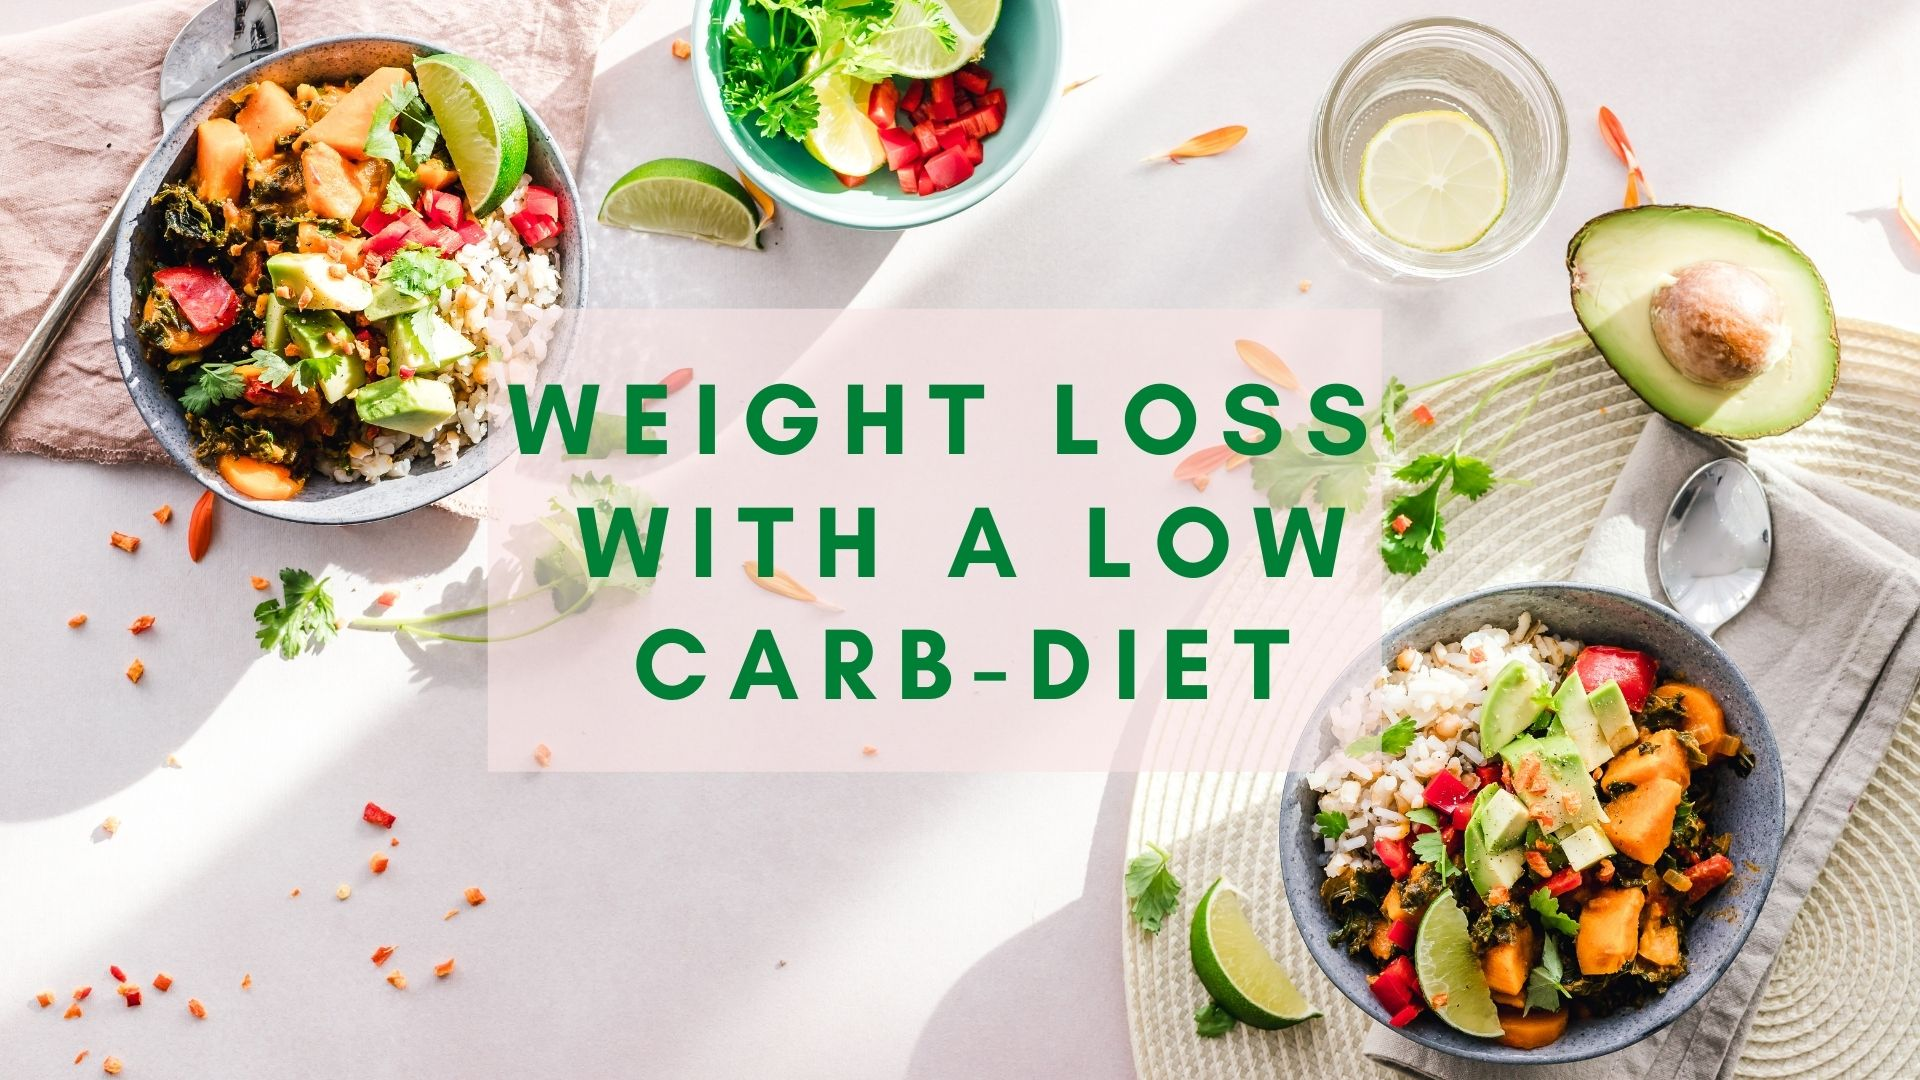 Pros & Cons of Keto Diet